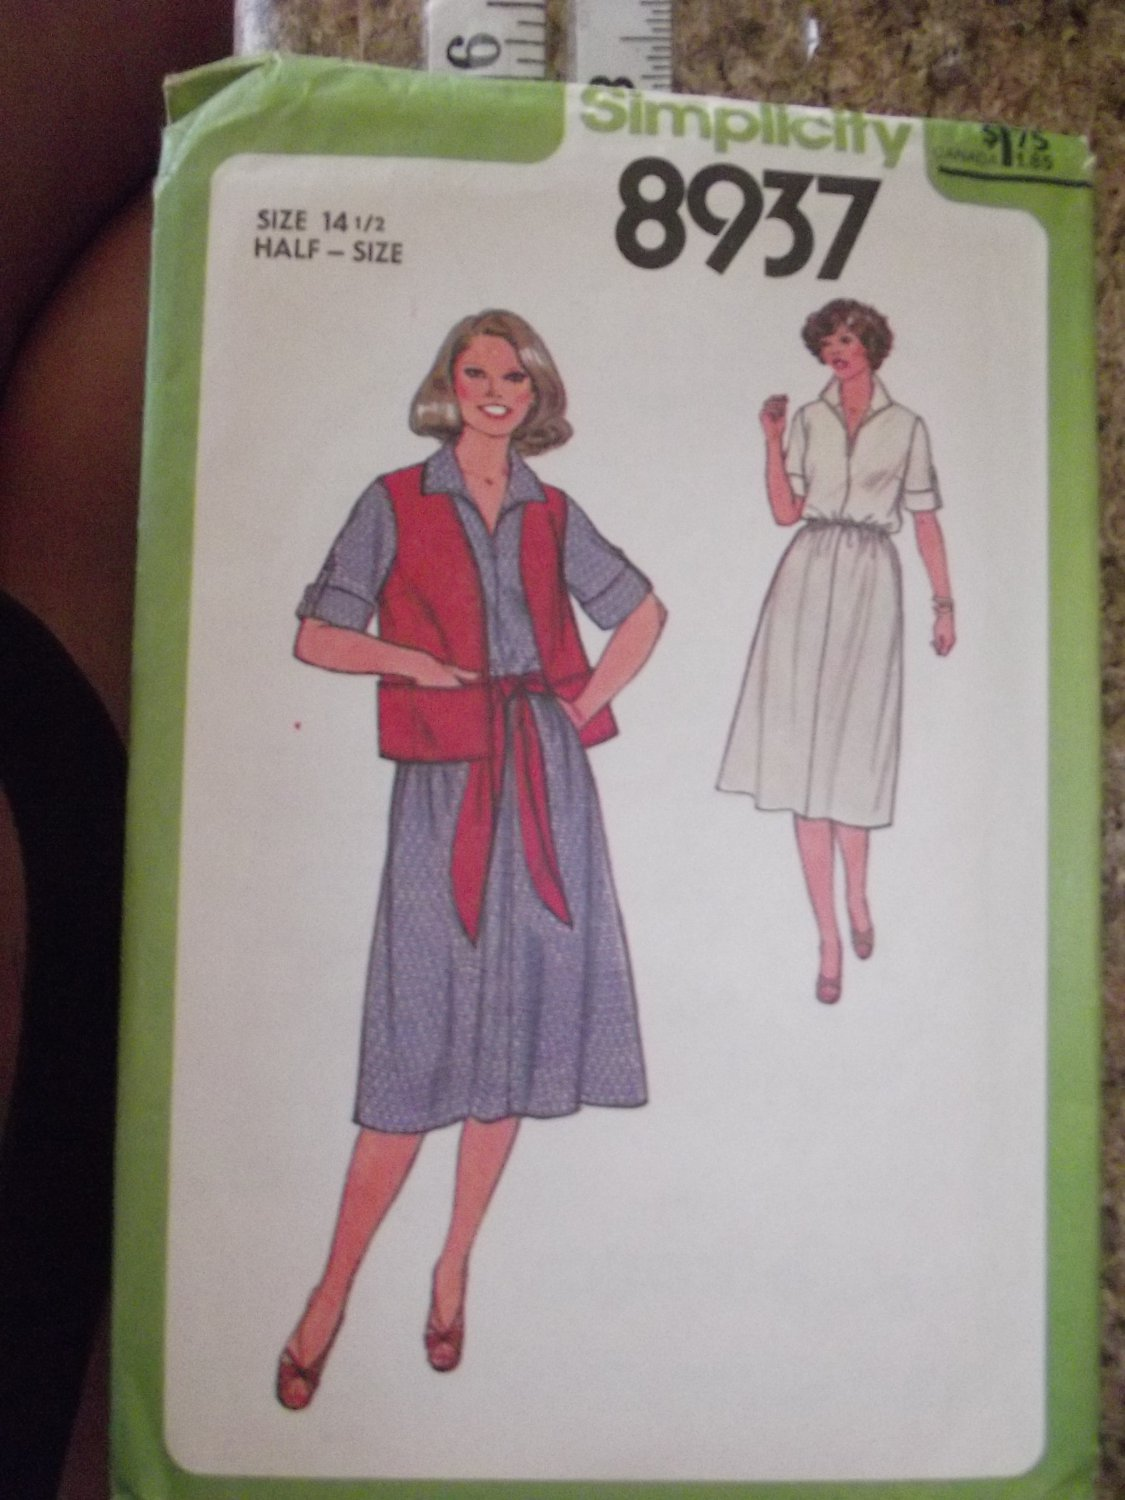 Vintage Simplicity pattern 8937 SZ 14 1/2 Uncut from 79